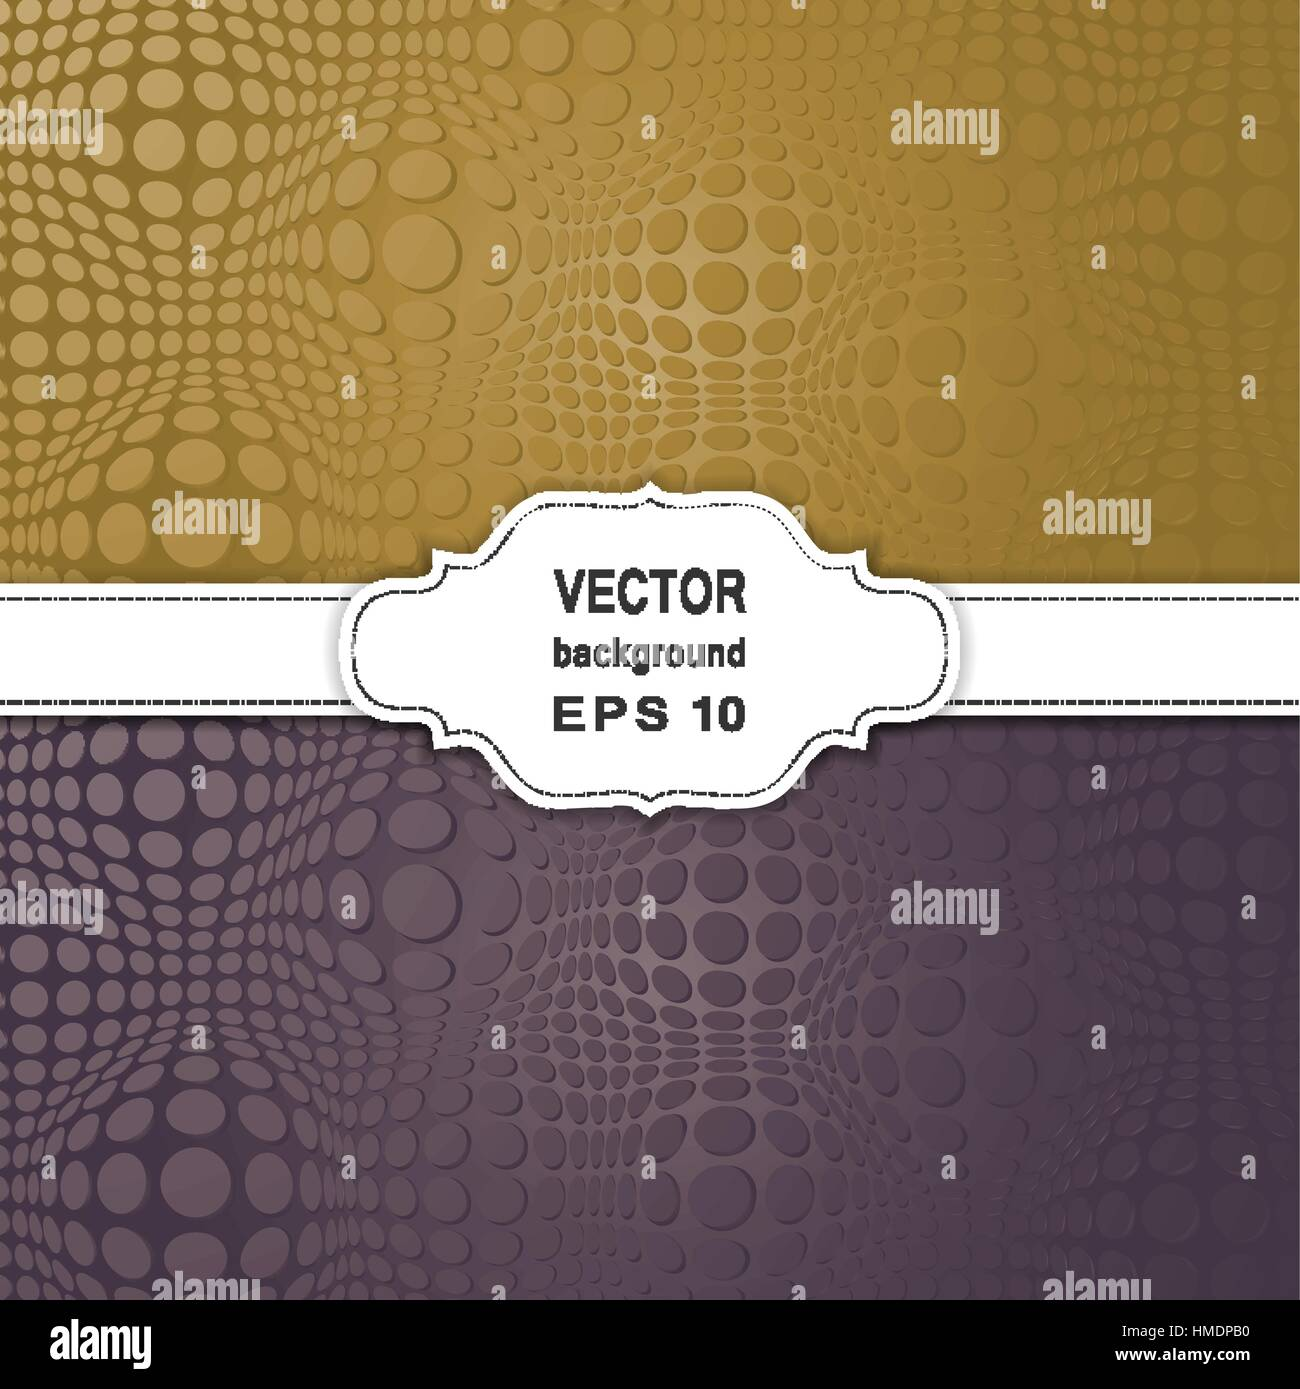 Set of Abstract Halftone Backgrounds. - Stock Image